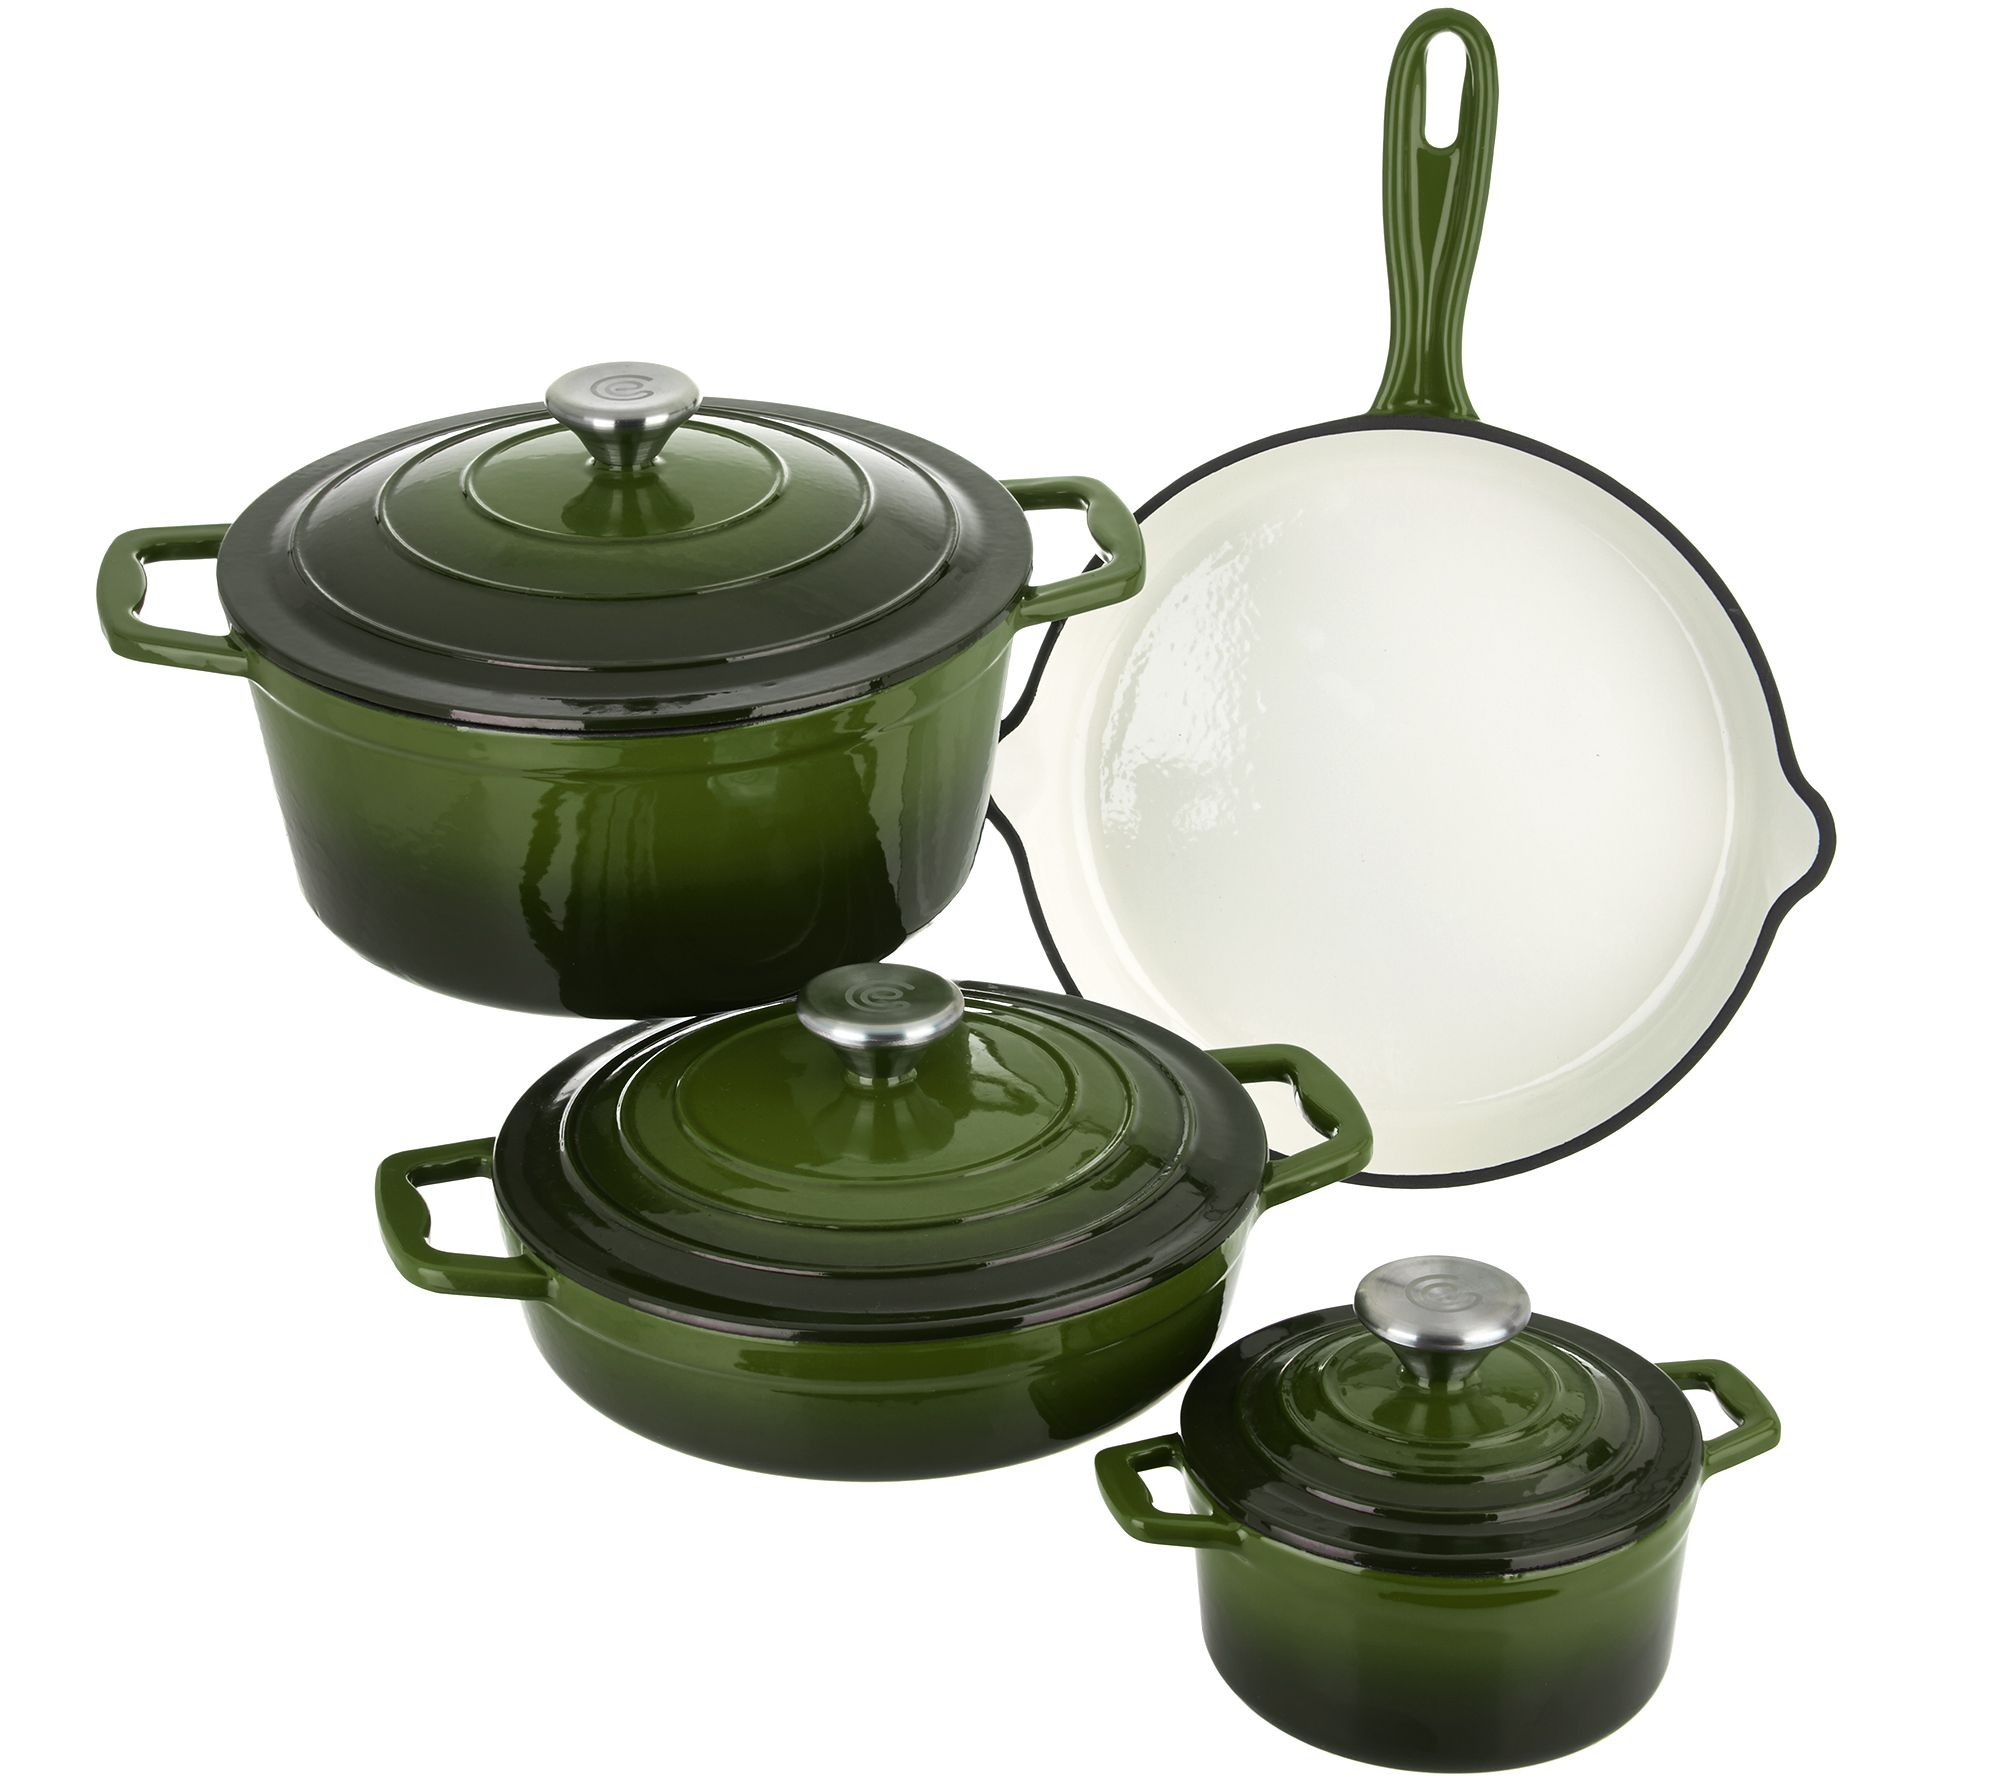 Quot As Is Quot Cook S Essentials 7 Pc Gradient Cast Iron Cookware Set Page 1 Qvc Com